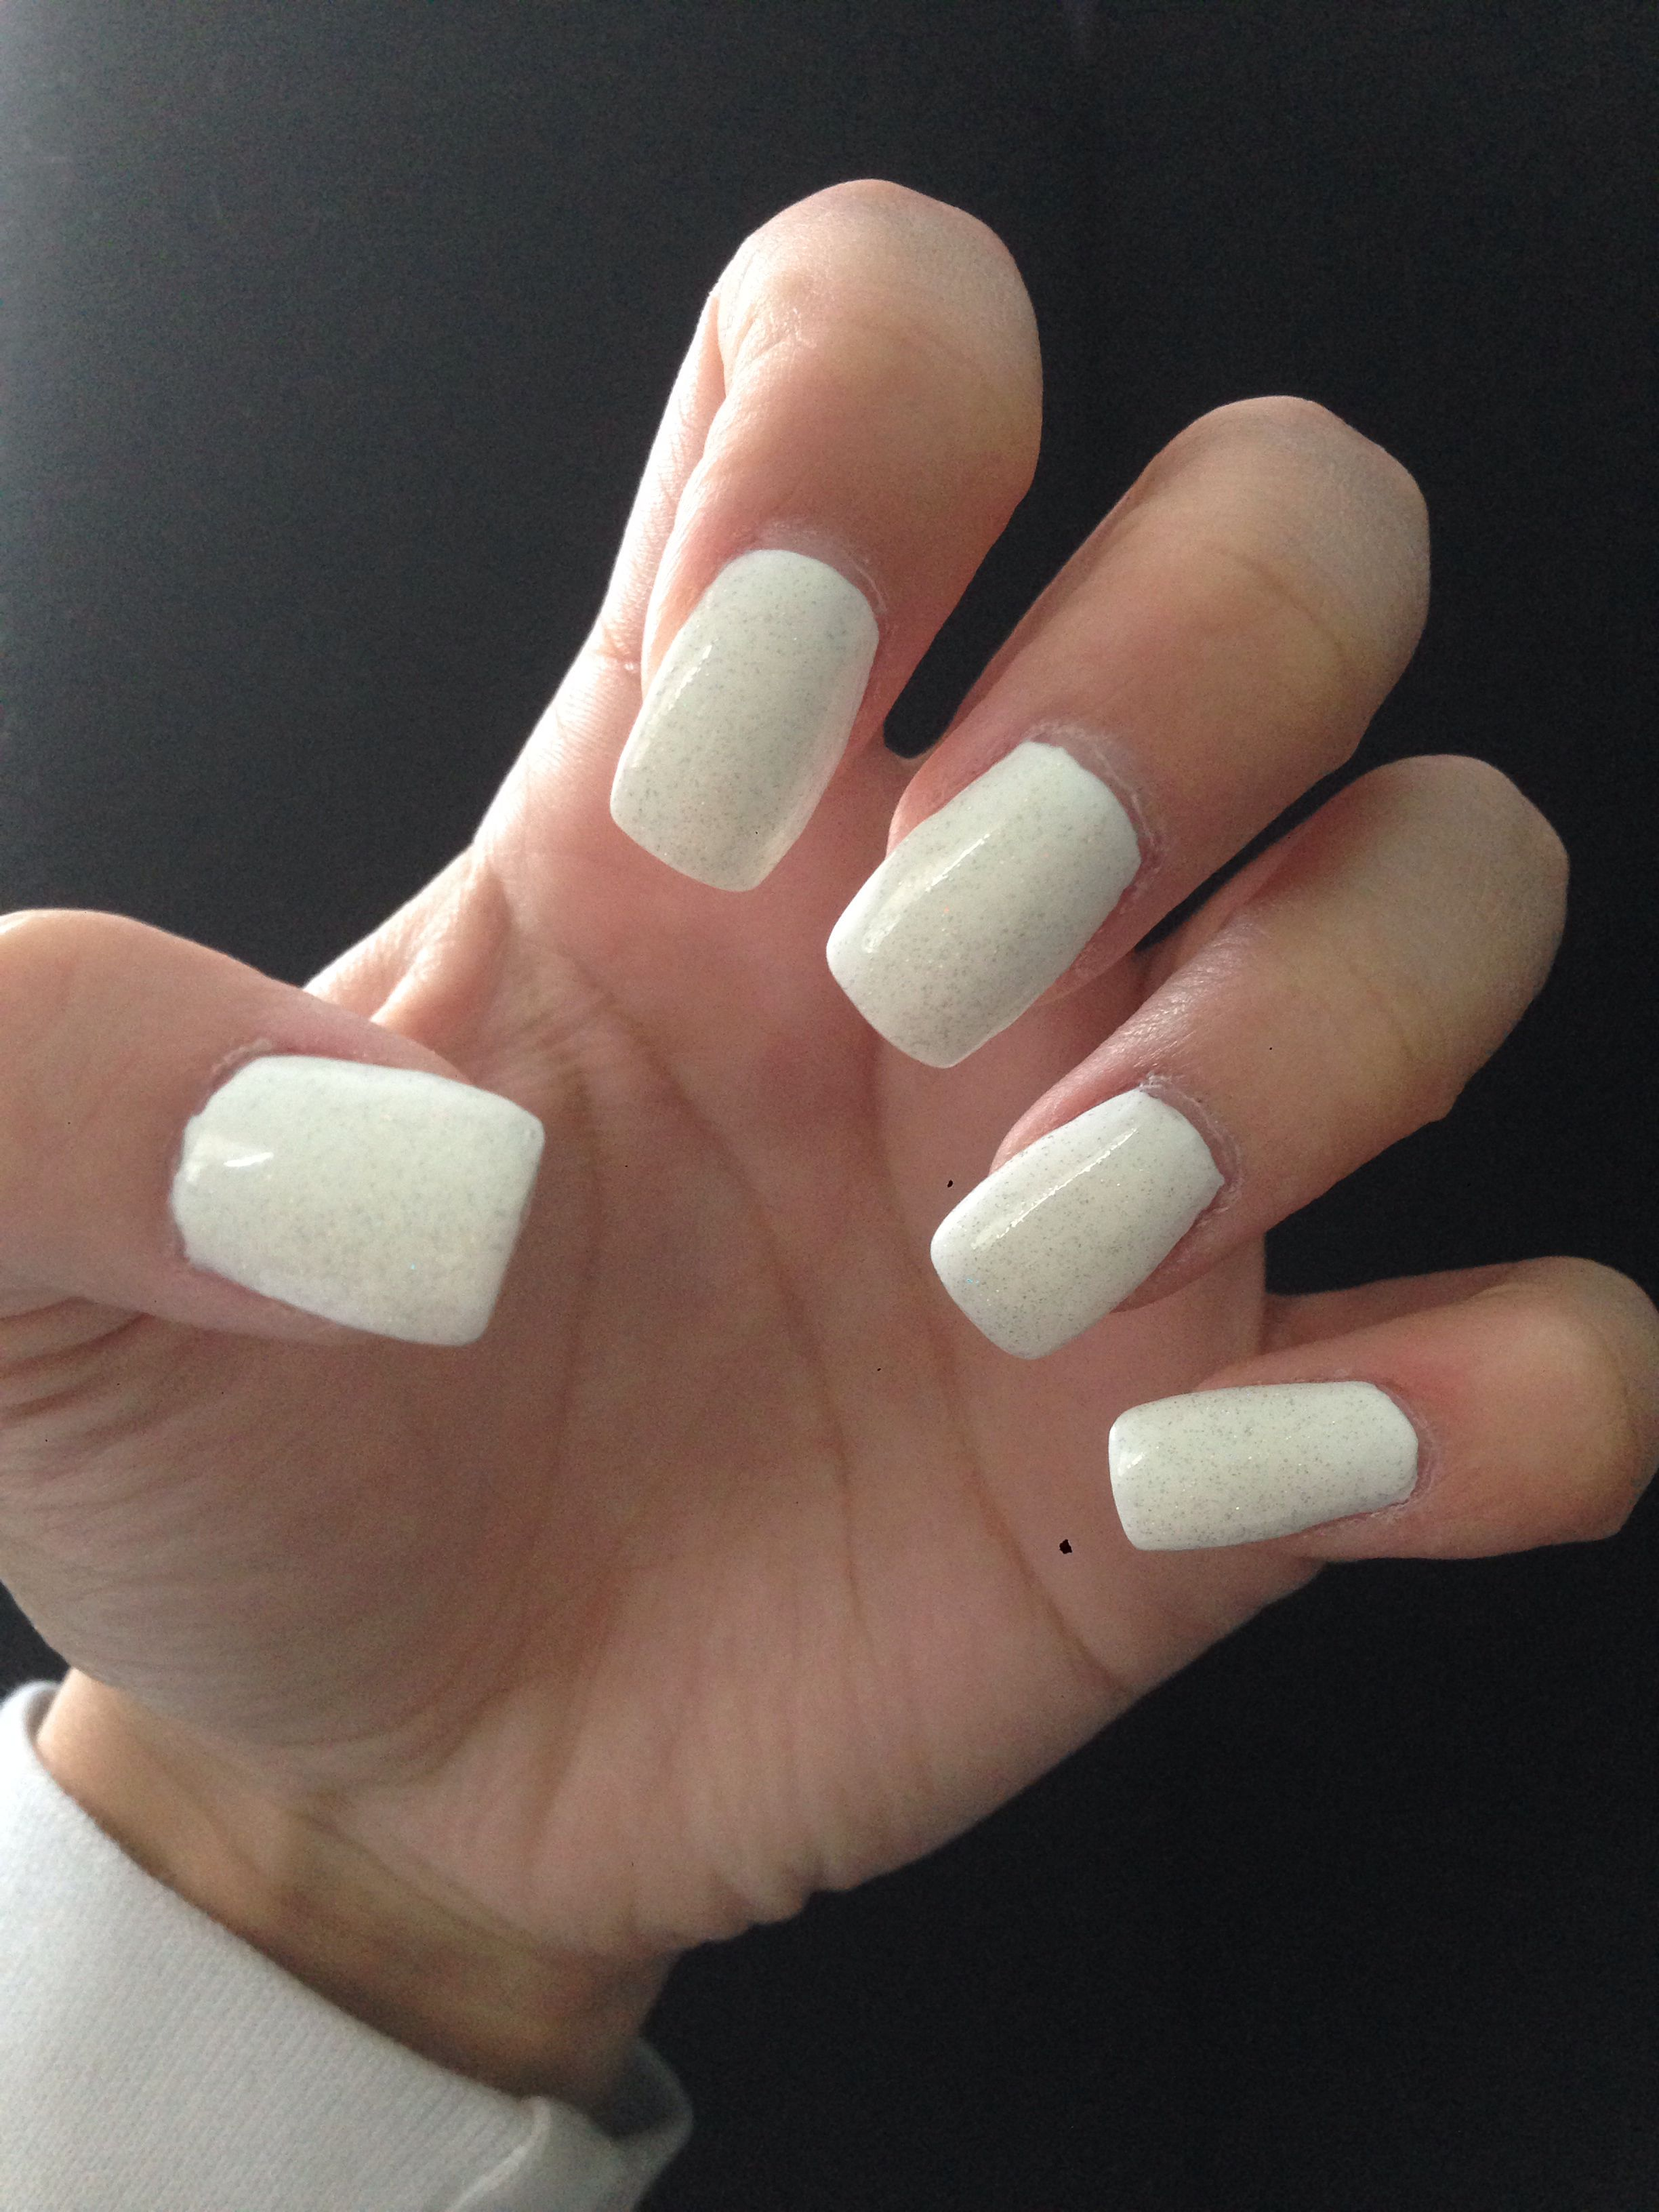 All White Acrylic Nails Obsessed Square Acrylic Nails Acrylic Nail Designs Diy Acrylic Nails